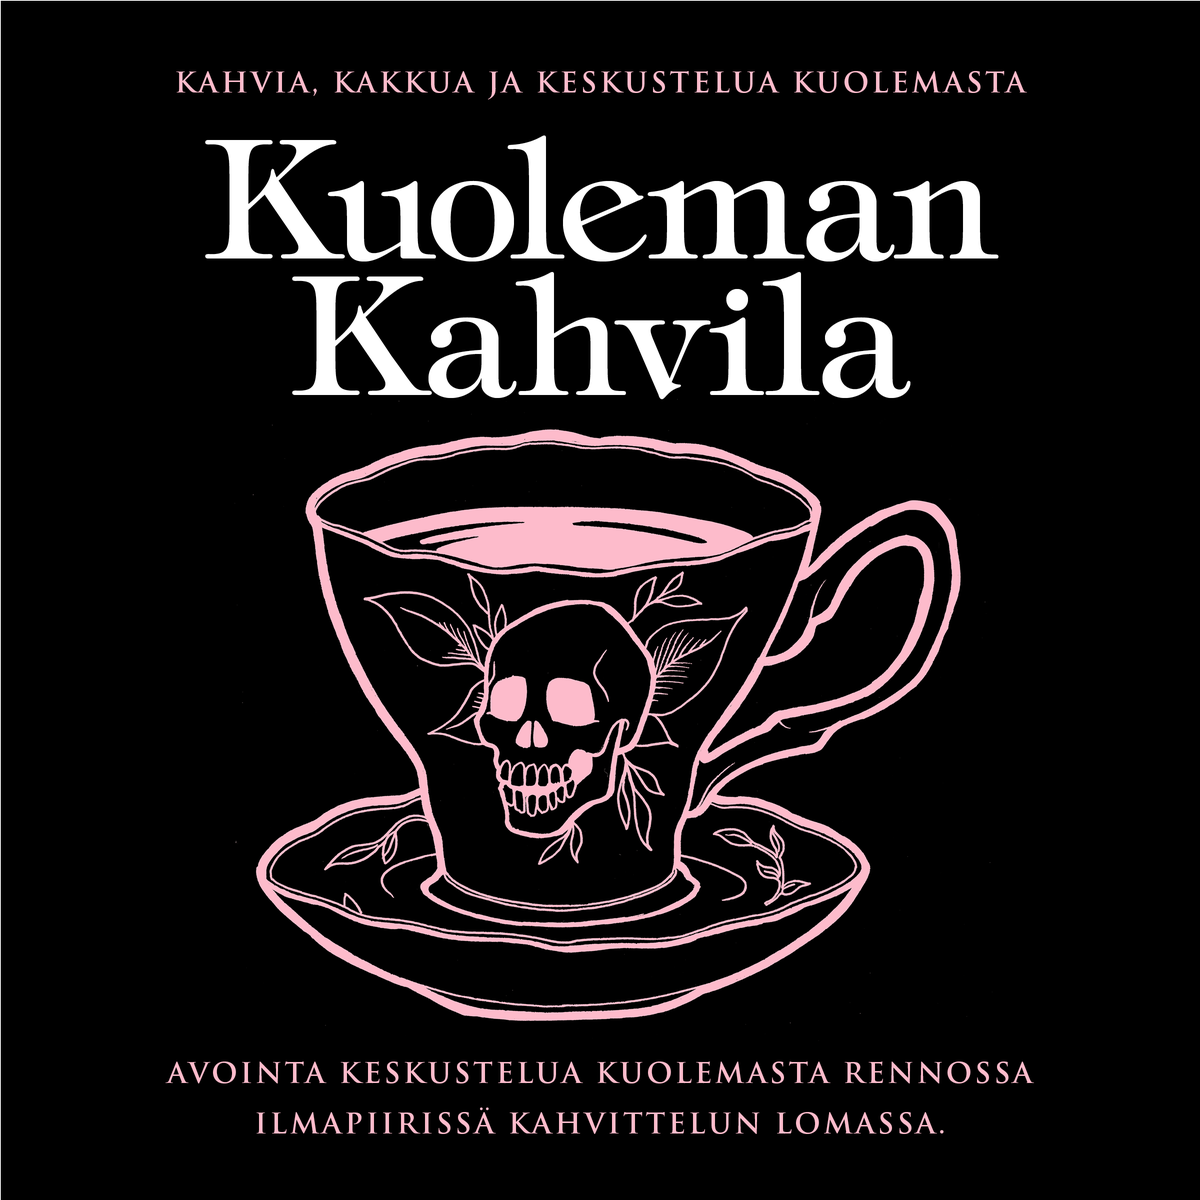 Finland Death Cafe – COFFEE, CAKE AND DISCUSSION ABOUT DEATH